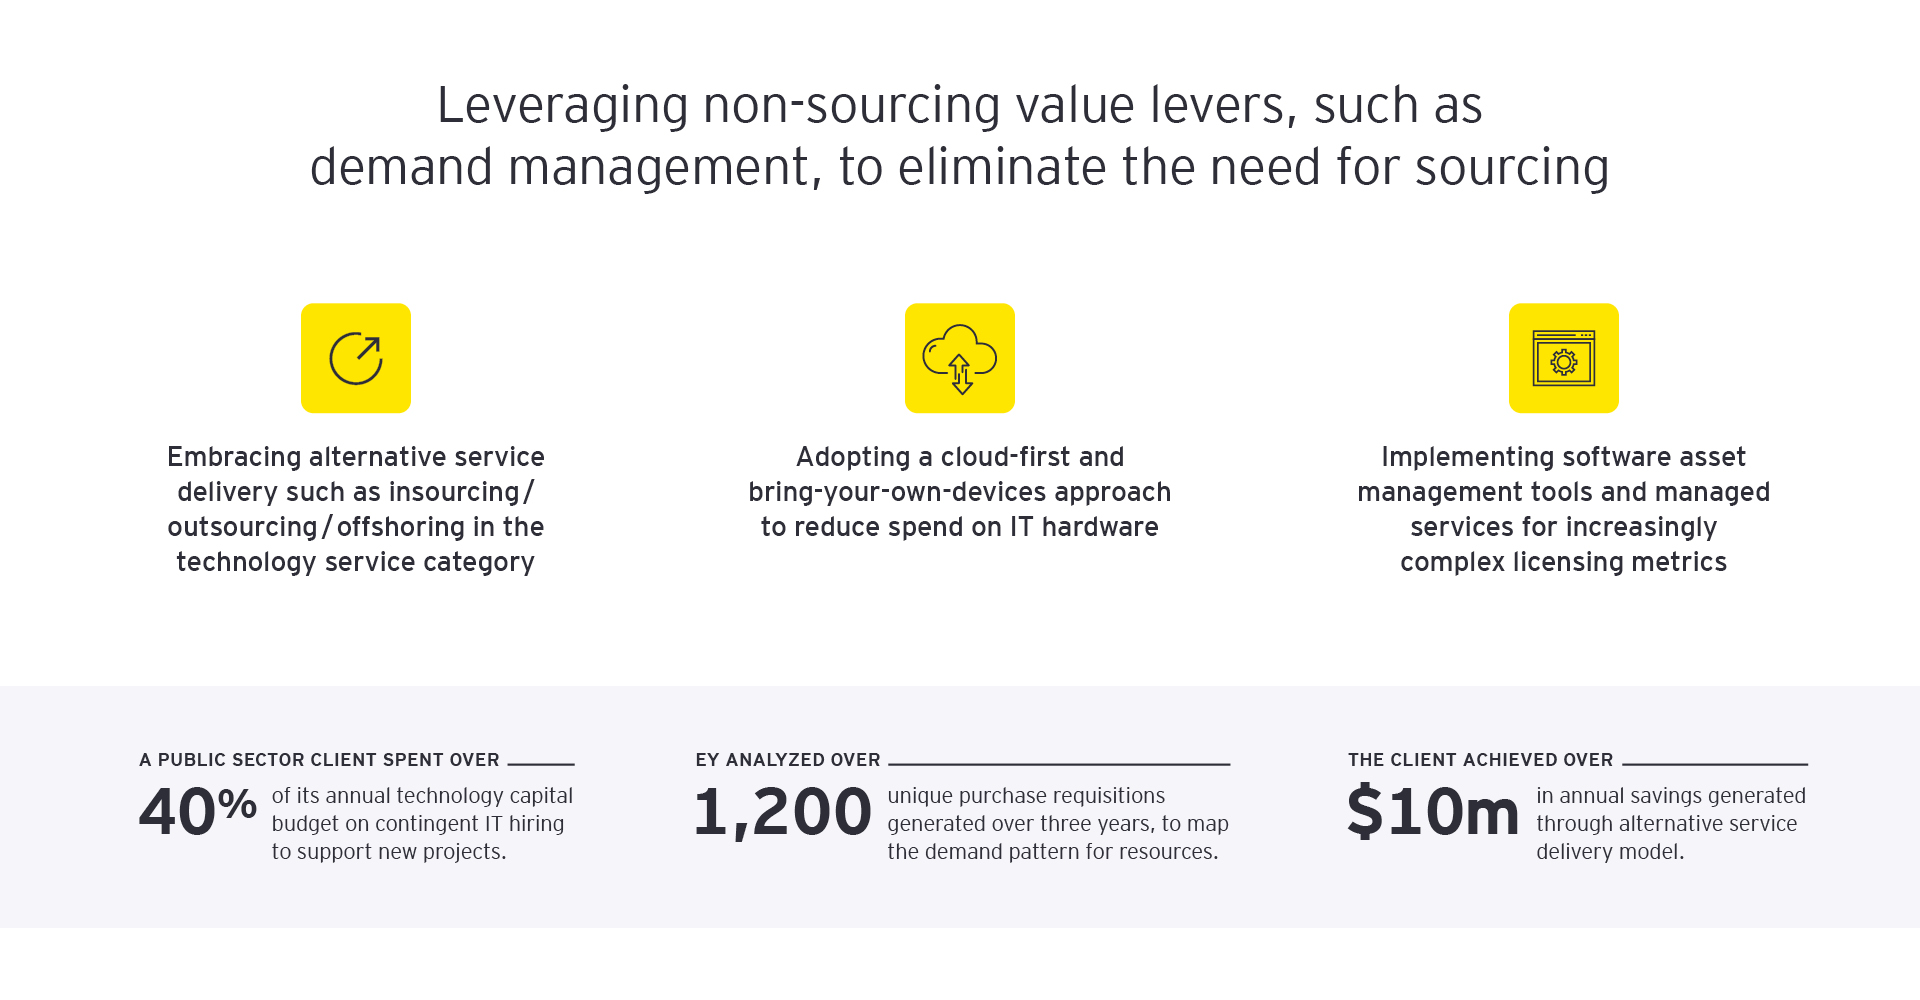 EY - Leveraging non-sourcing value levers, such as demand management, to eliminate the need for sourcing